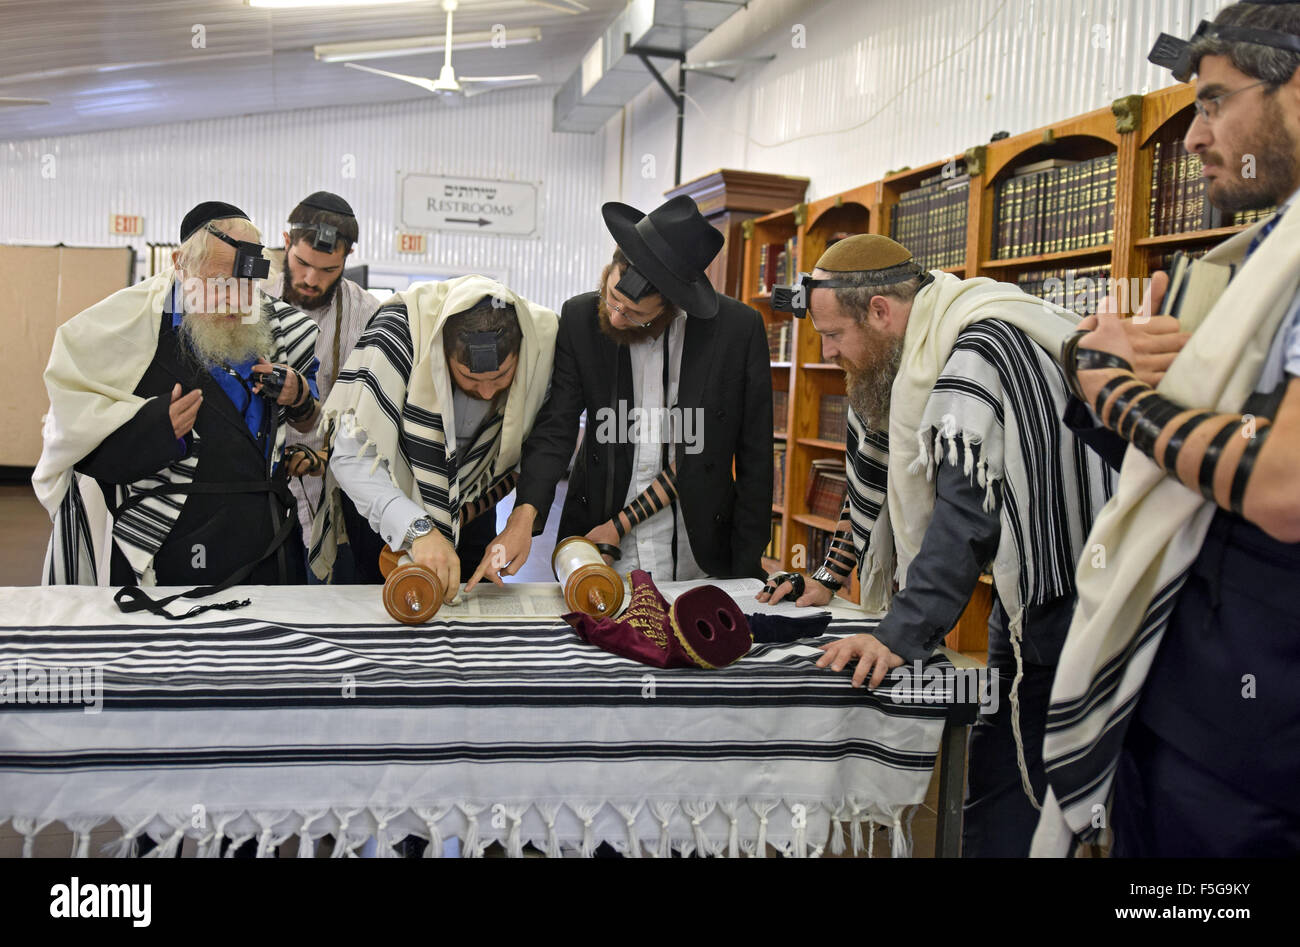 A group of religious Jewish men praying at a small synagogue in Cambria Heights, Queens, New York - Stock Image